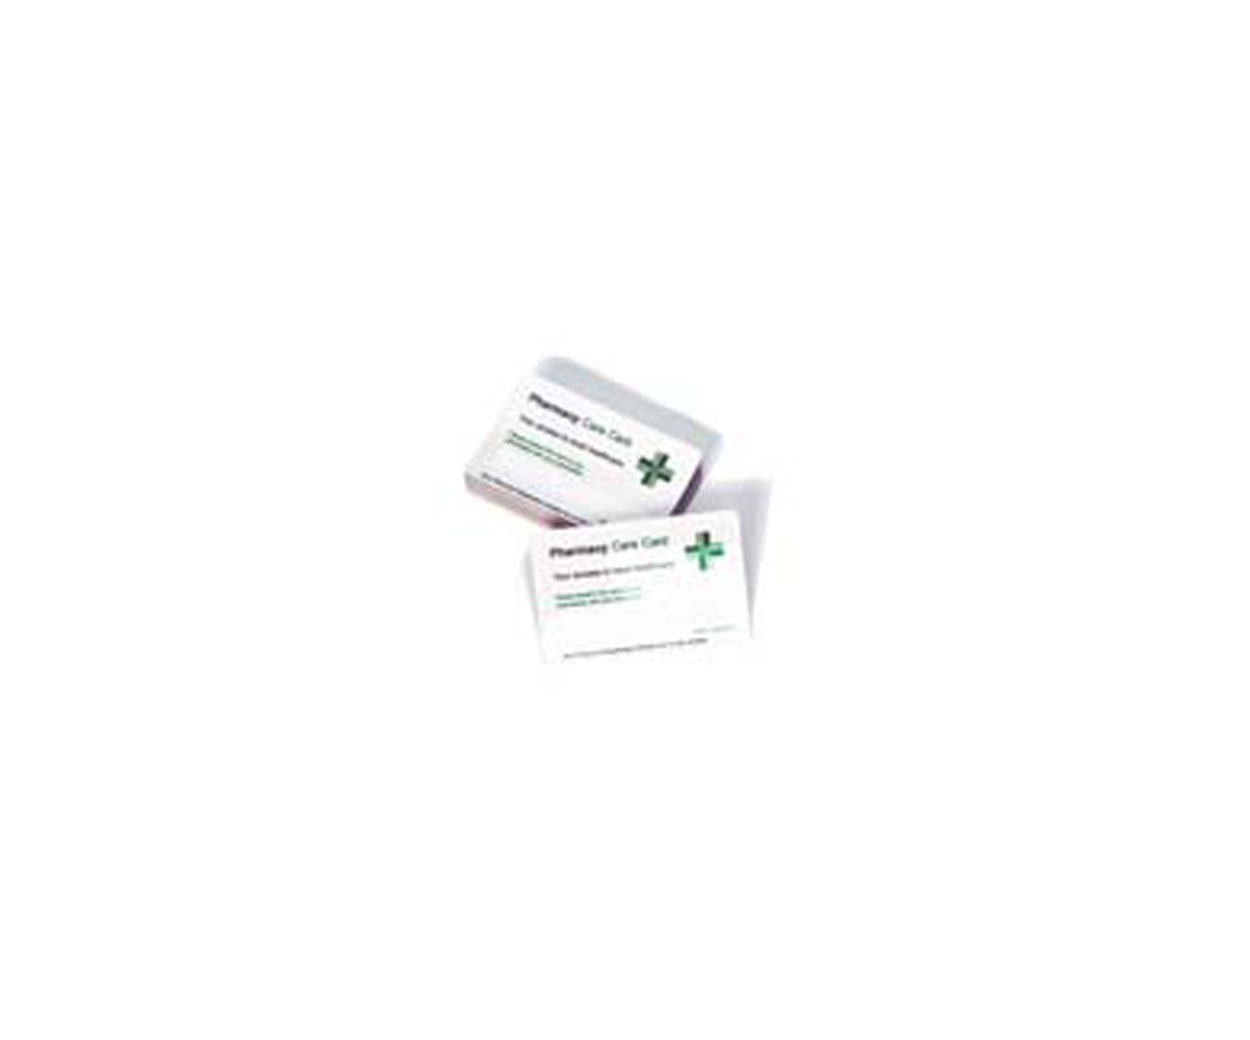 Pharmacy Patient Care Cards - Out of stock